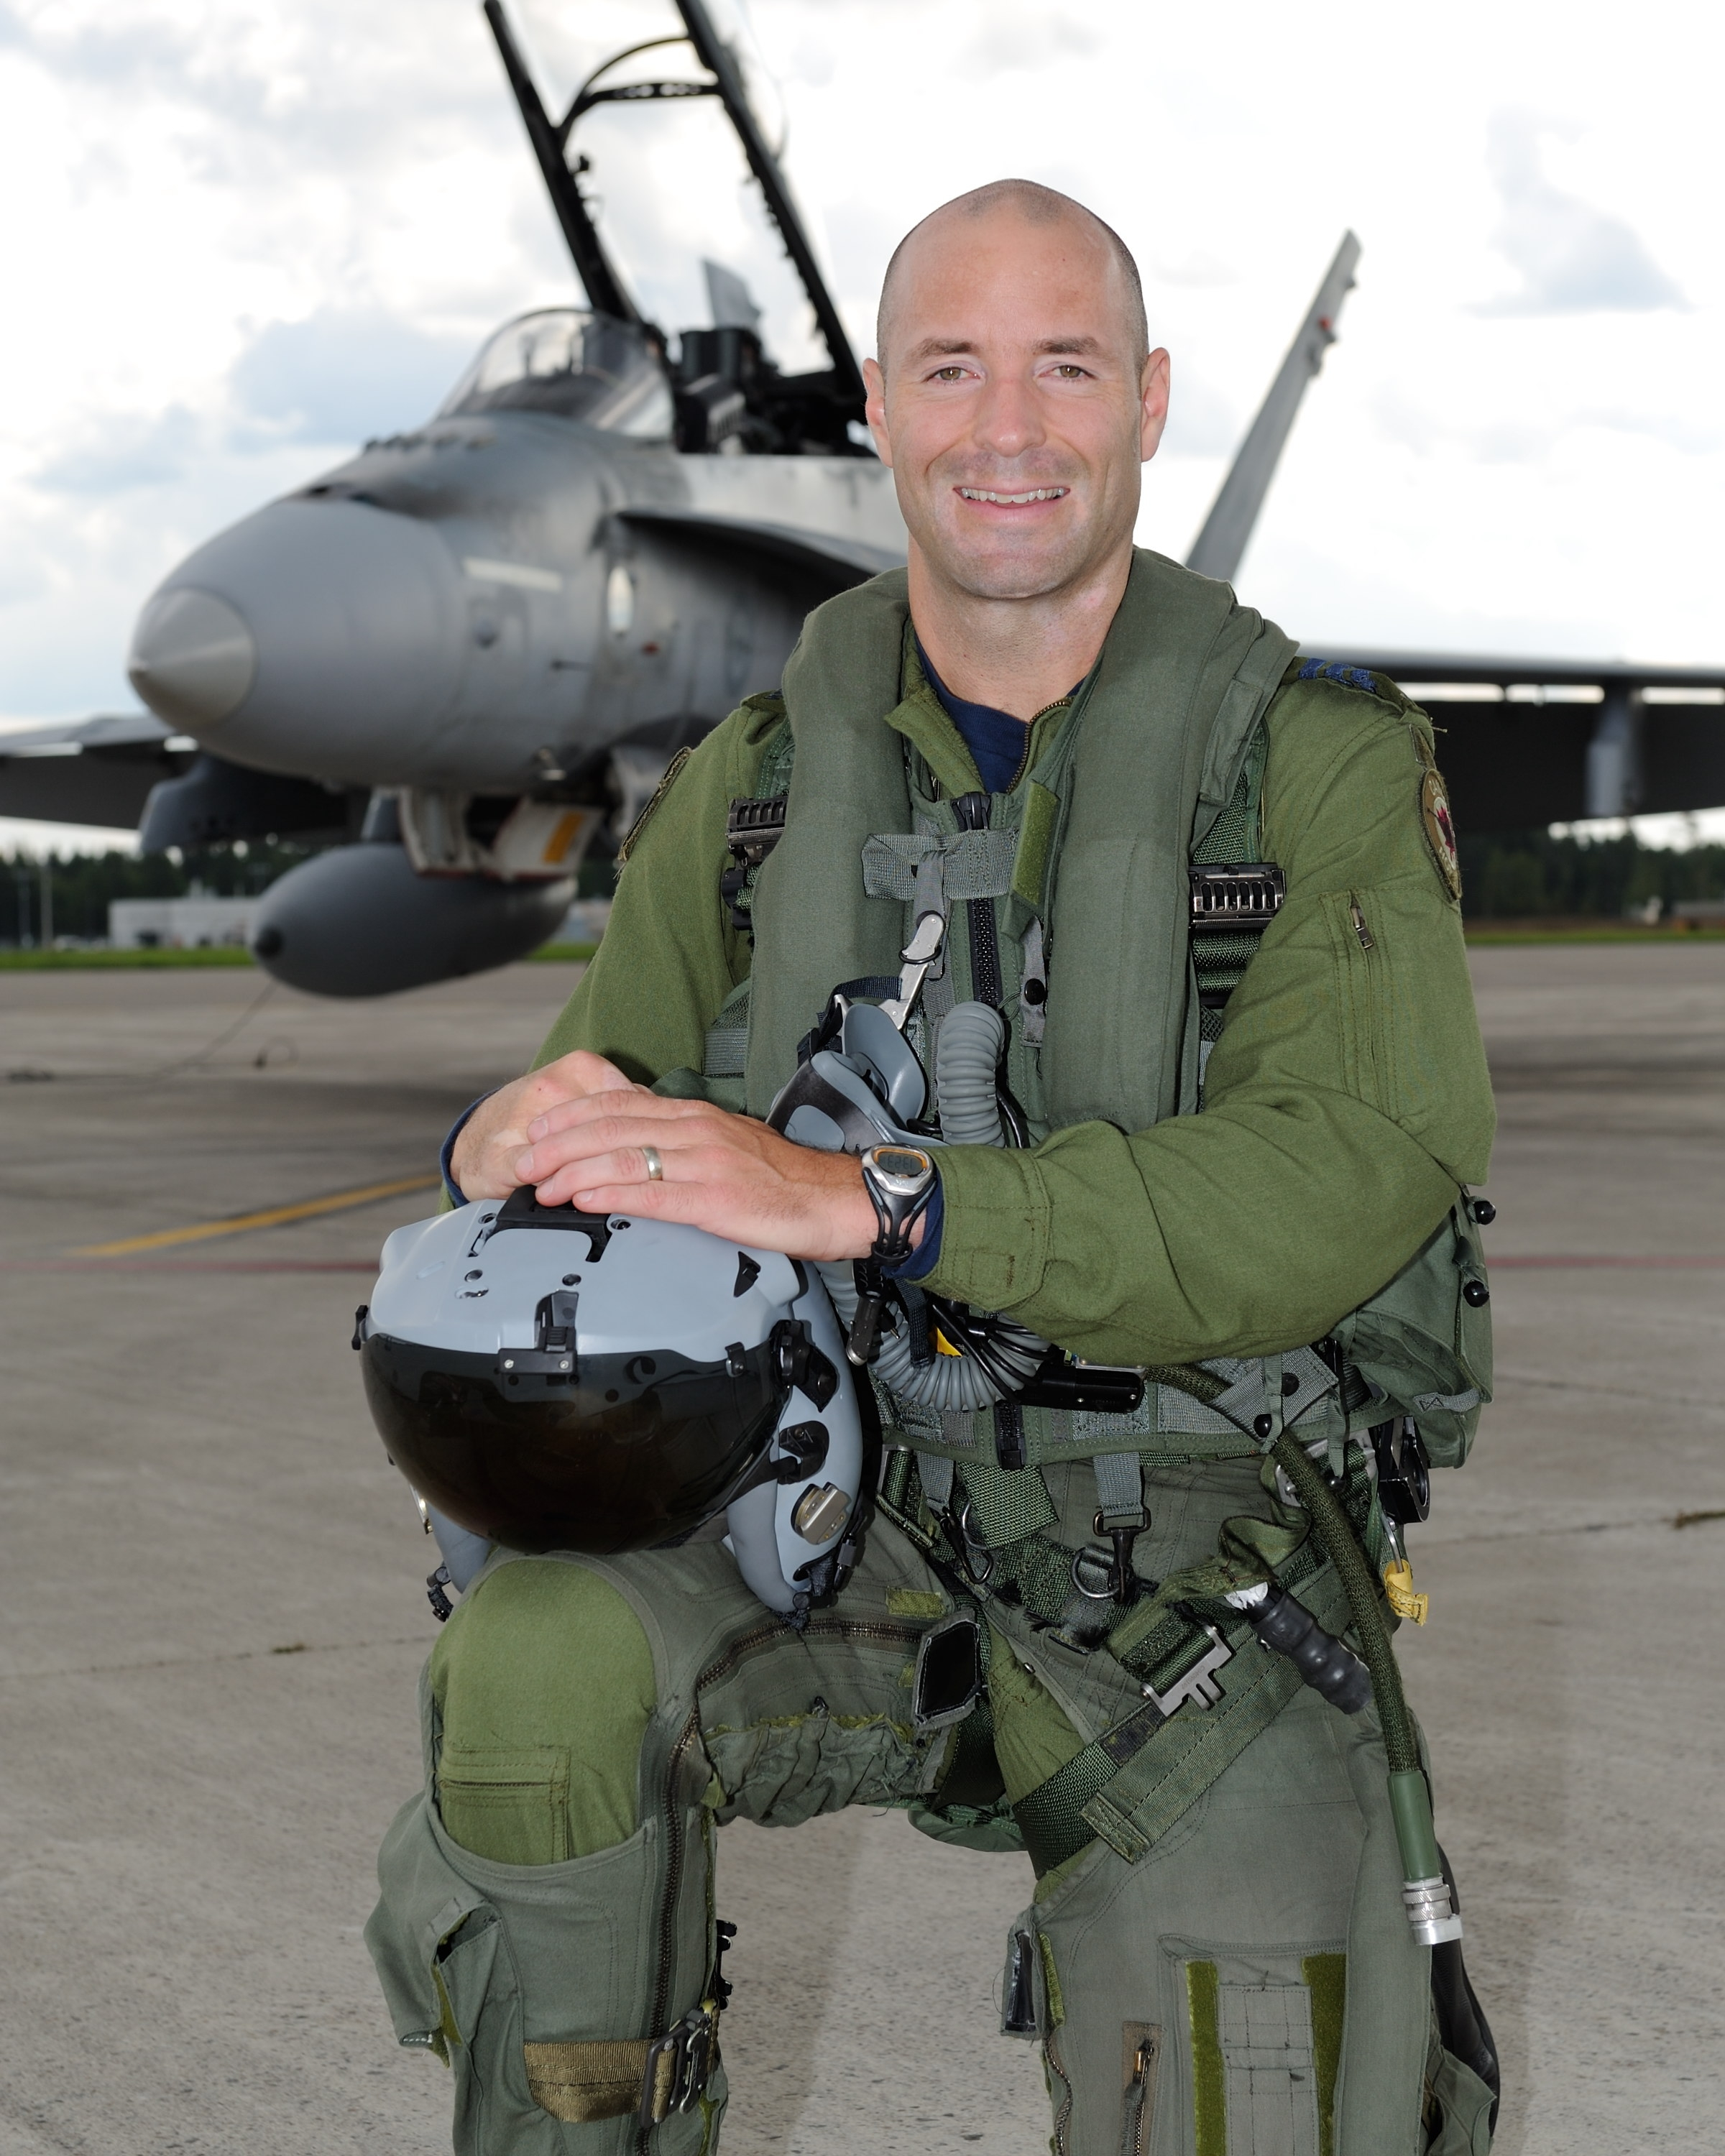 Lieutenant-Colonel Darcy Molstad, from 425 Tactical Fighter Squadron, 3 Wing Bagotville, Quebec. Lieutenant-Colonel Molstad's hometown is Edmonton, Alberta. PHOTO: DND